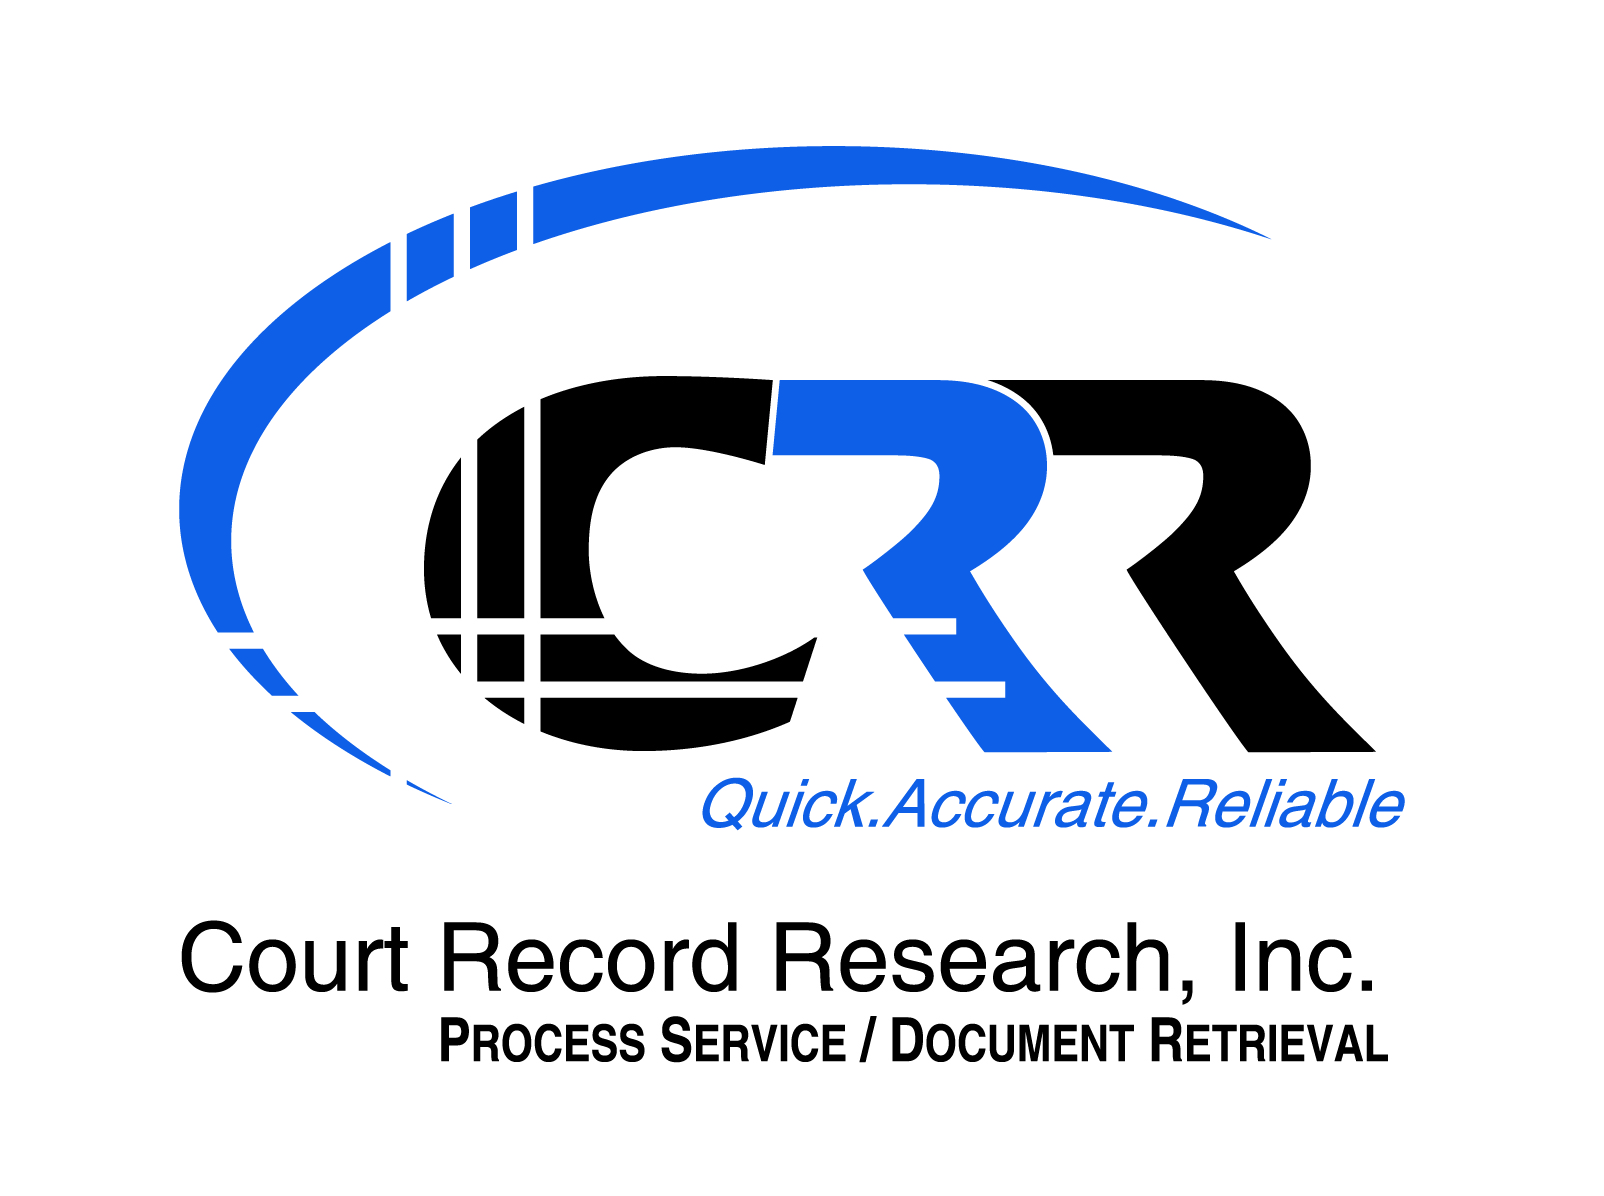 Court Record Research, Inc.